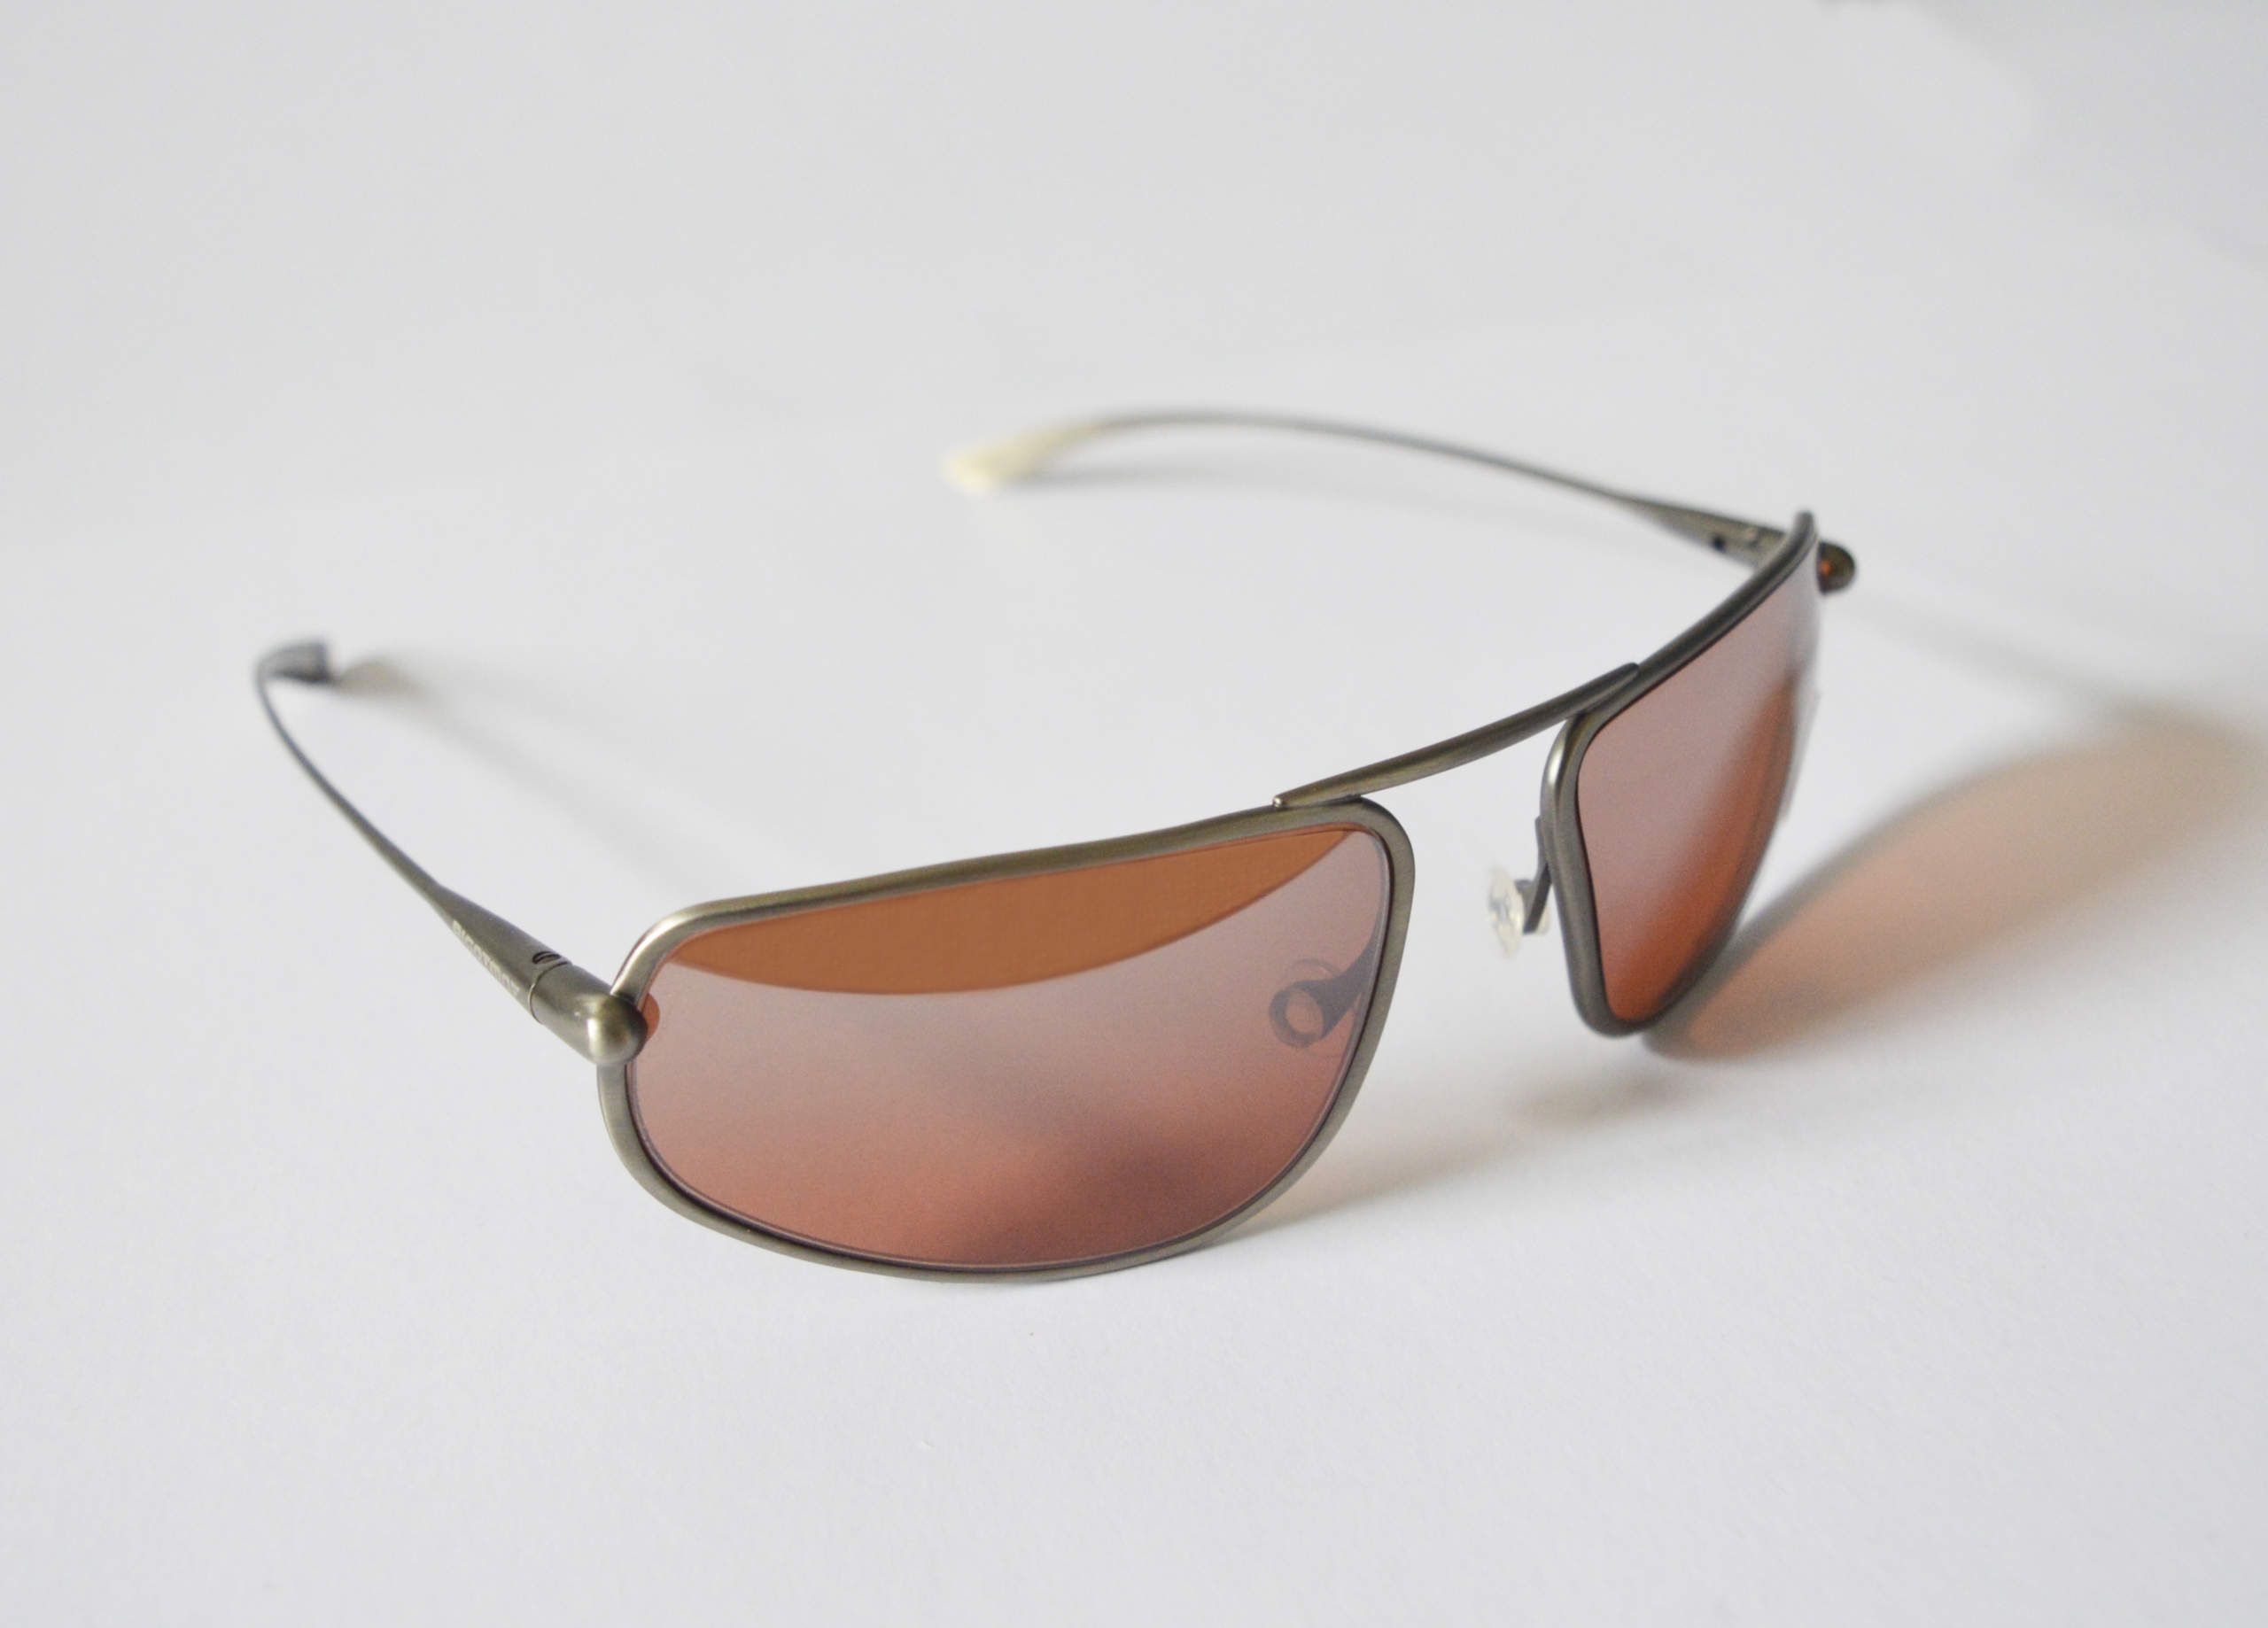 Strato - Natural Titanium Frame Silver Gradient Mirror Copper/Brown Photochromic Sunglasses